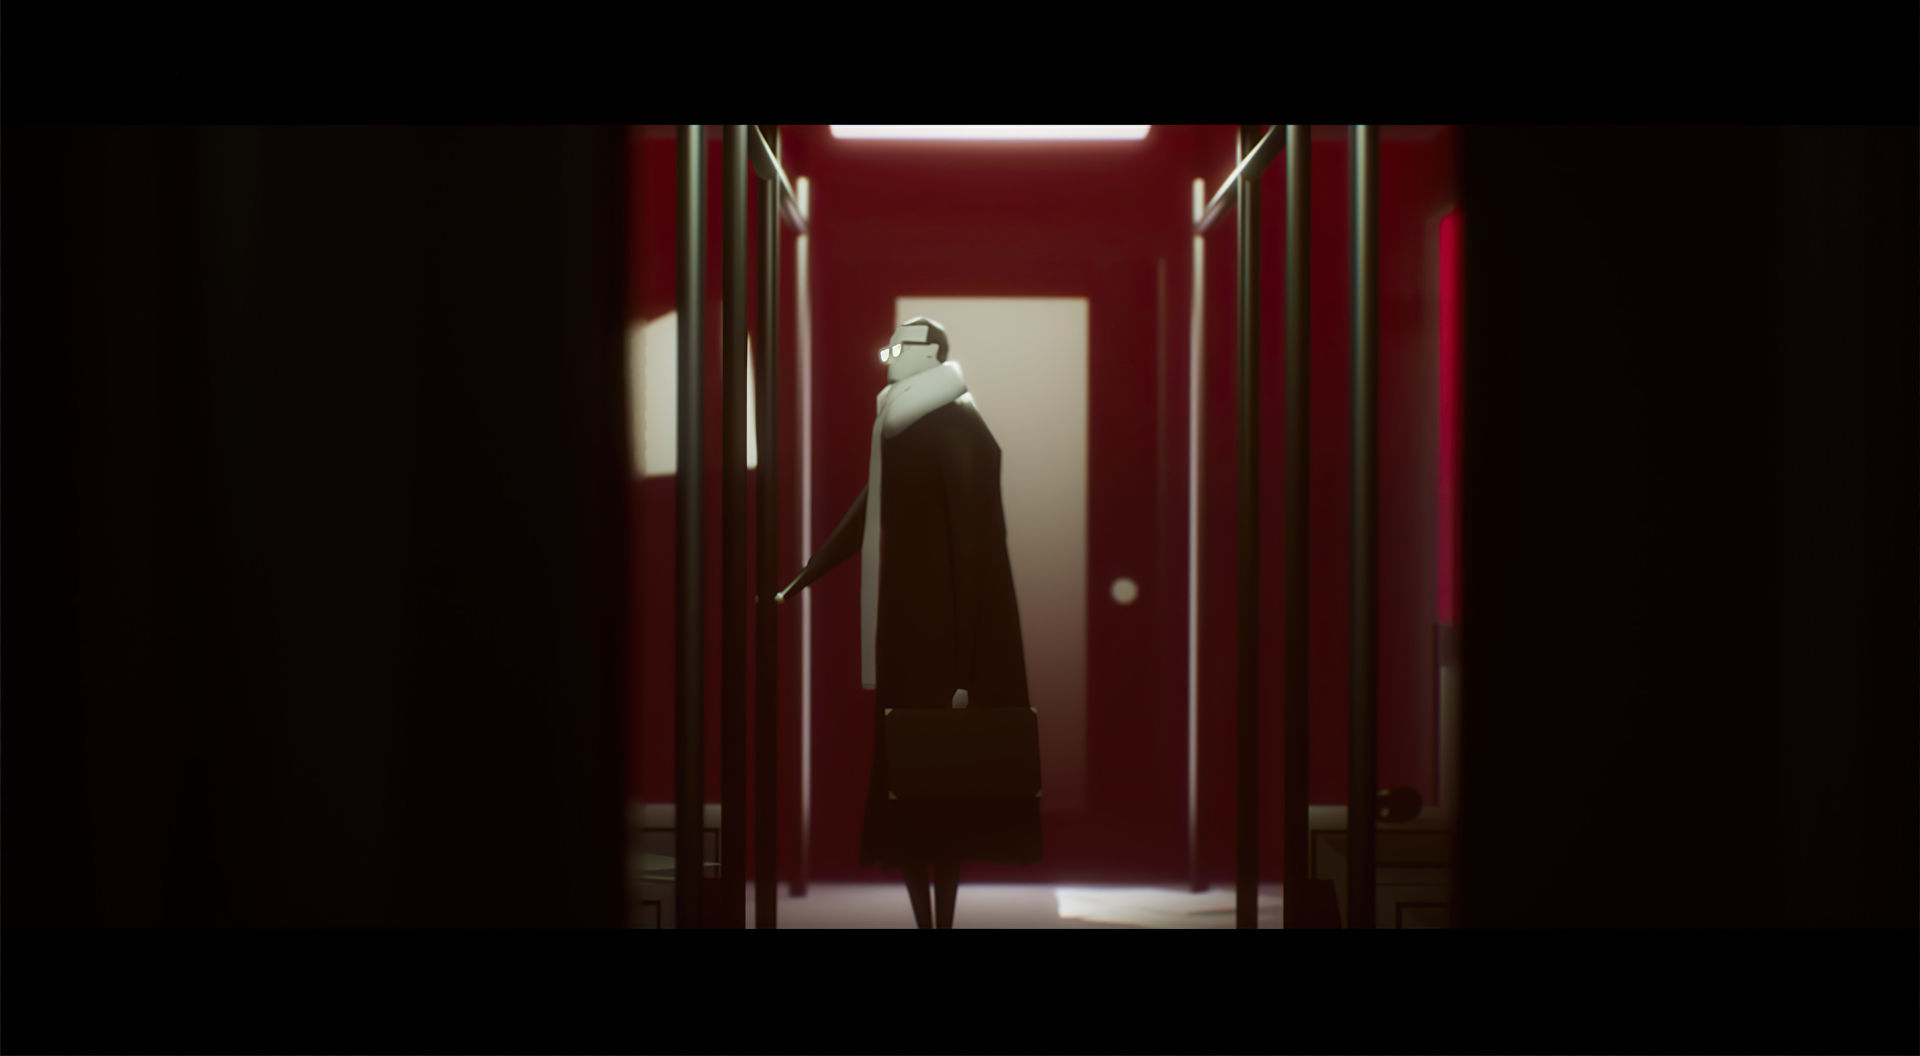 The Plane Effect looks like another quiet, creepy adventure game